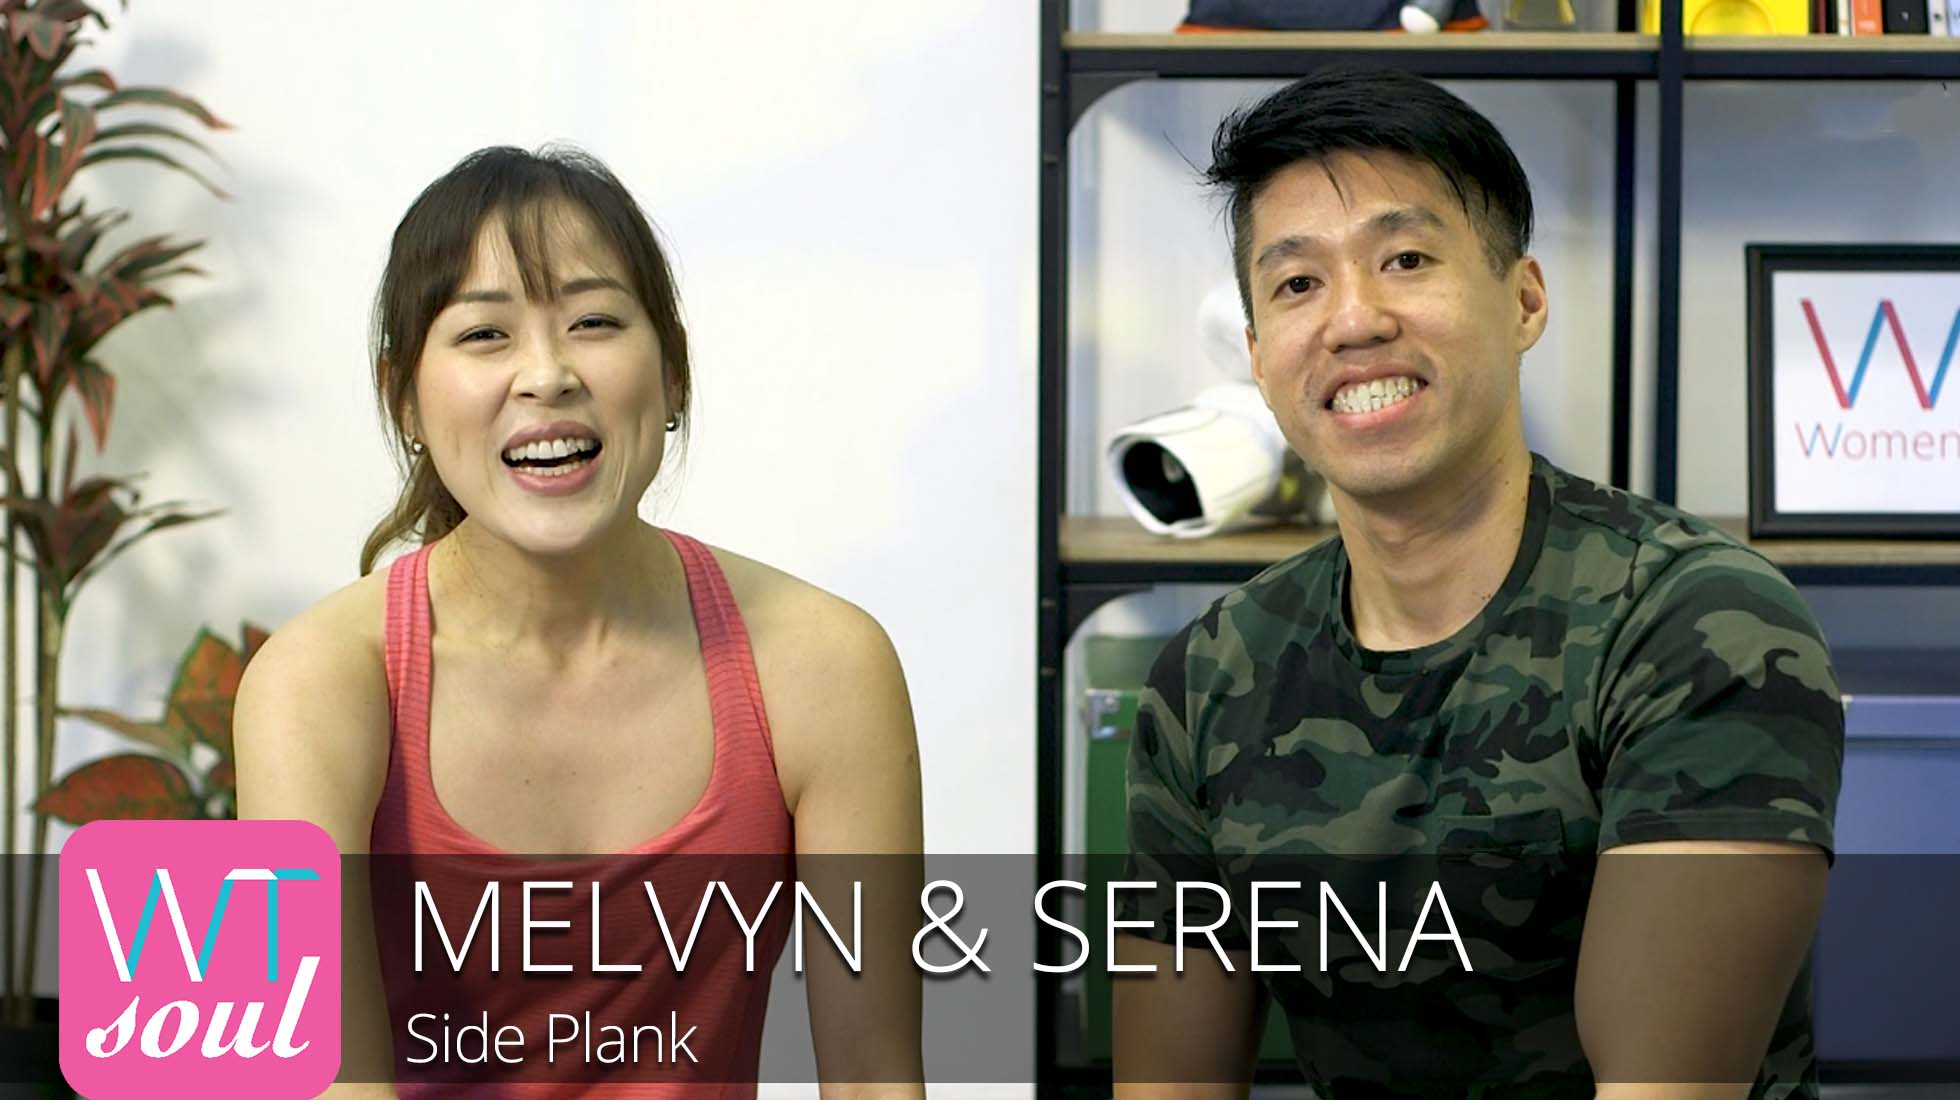 melvyn serena side plank womentalk